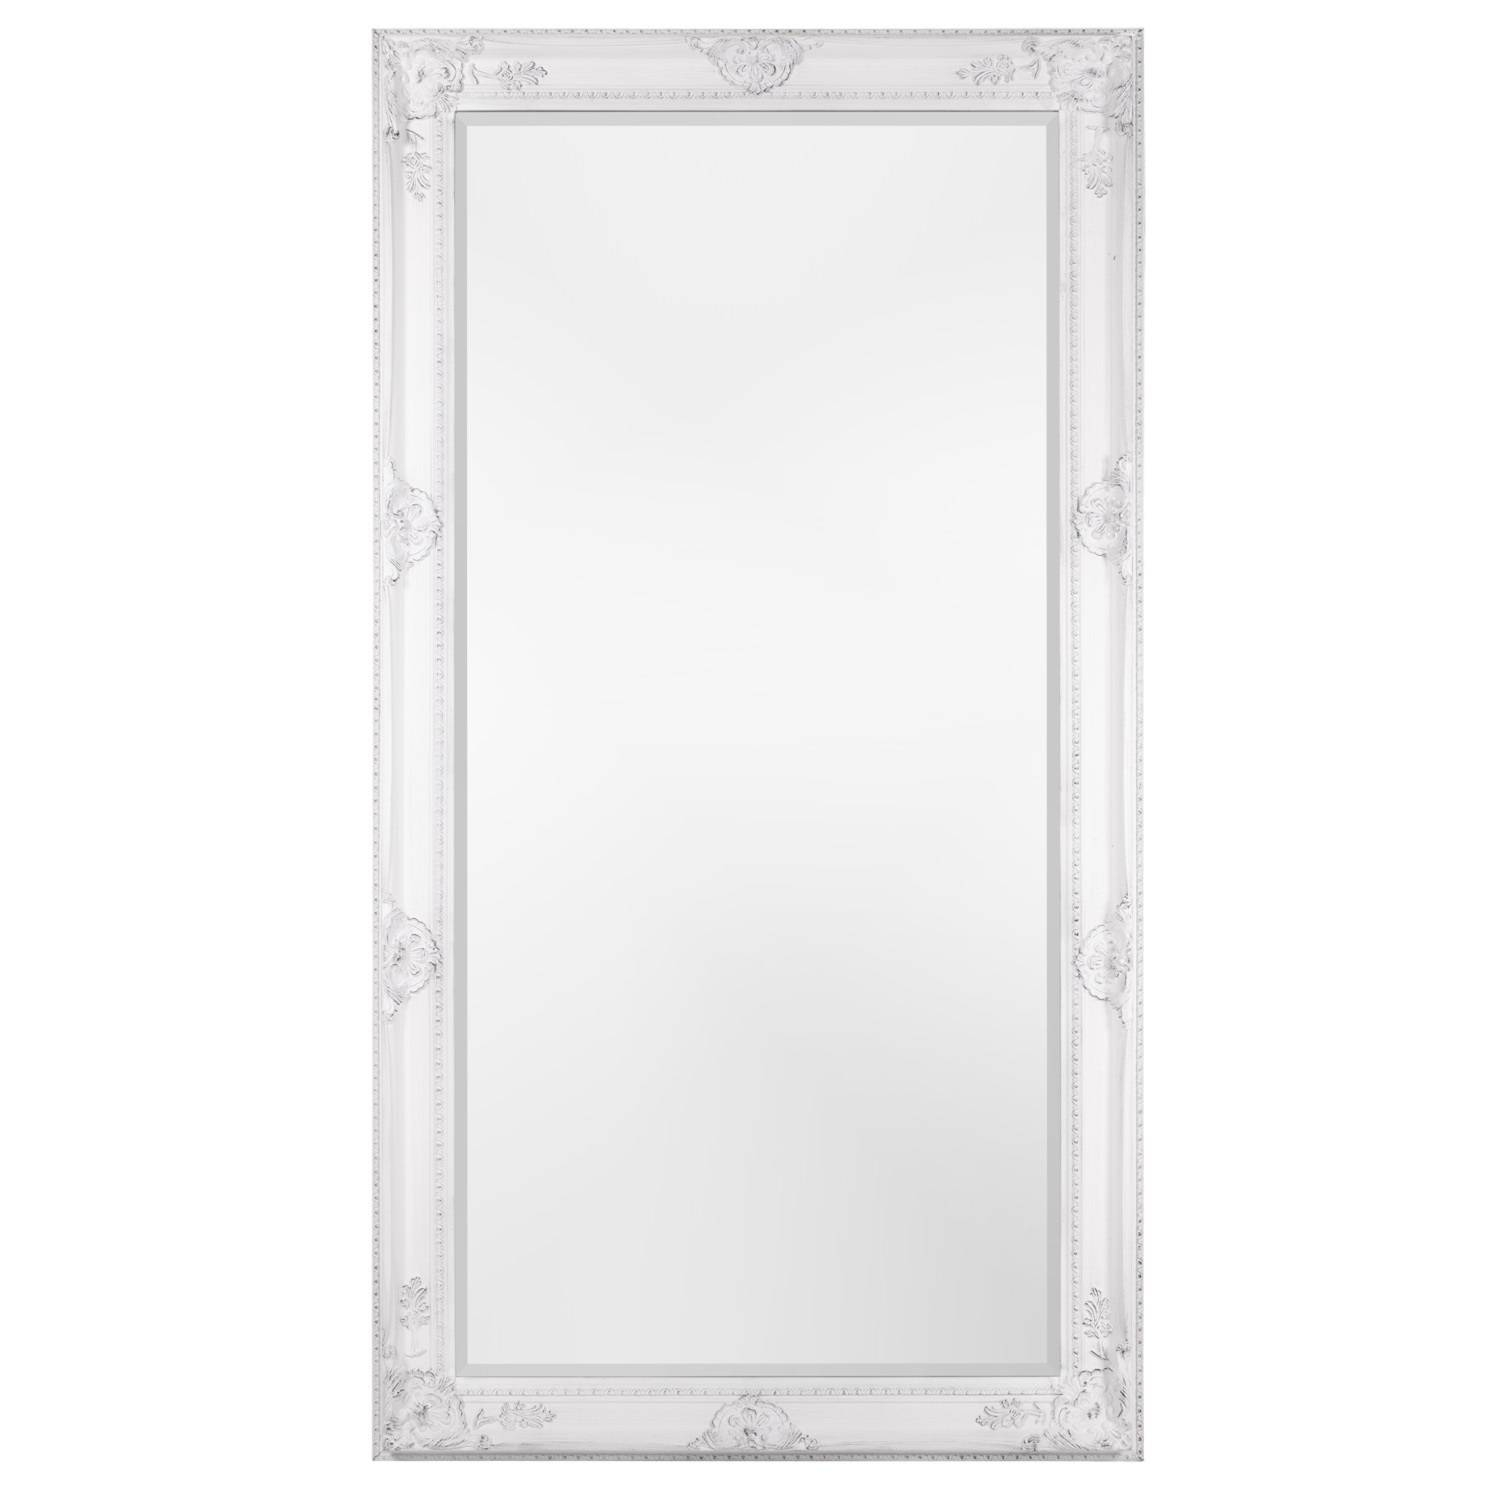 Free Standing Long Mirrors Bedroom ~ Piazzesi with Free Standing Long Mirrors (Image 10 of 15)